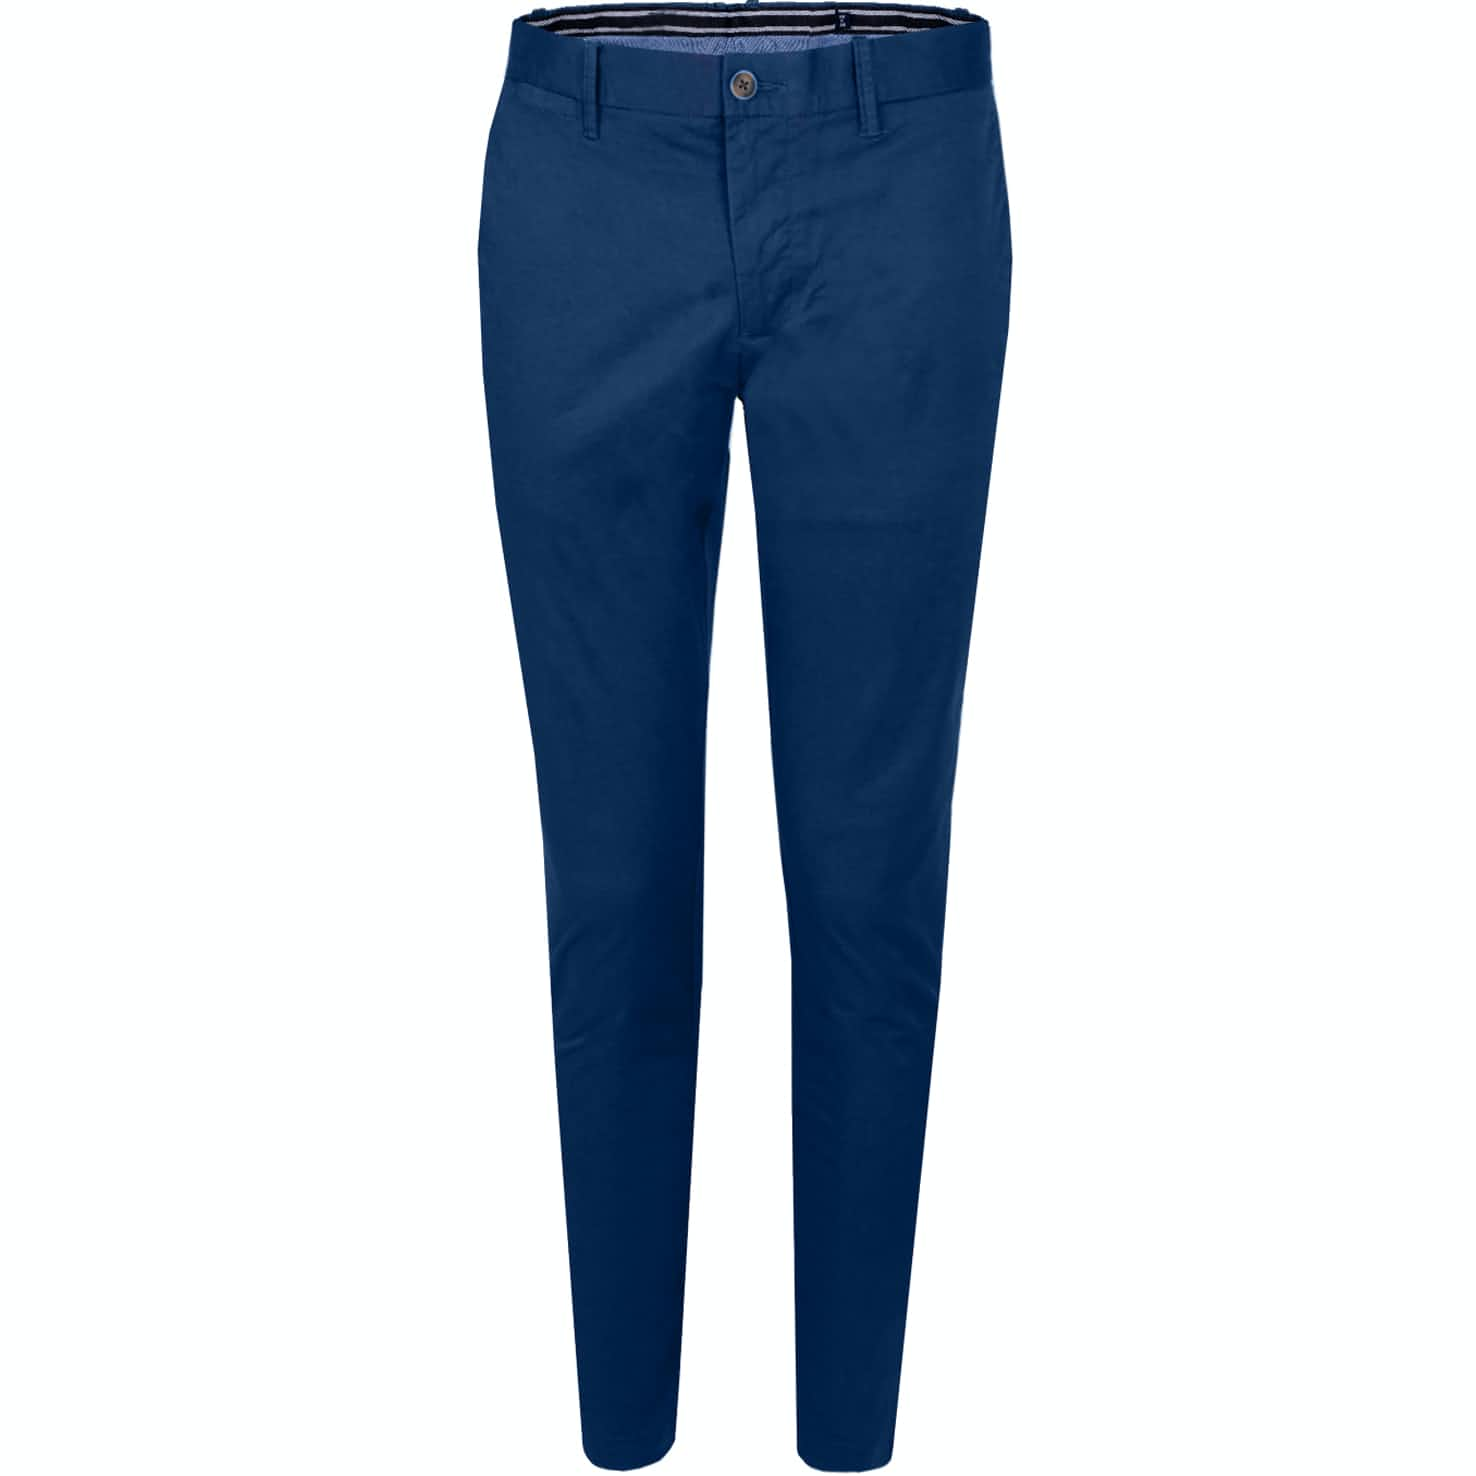 P55 Chino Trousers Sargasso Sea - AW19